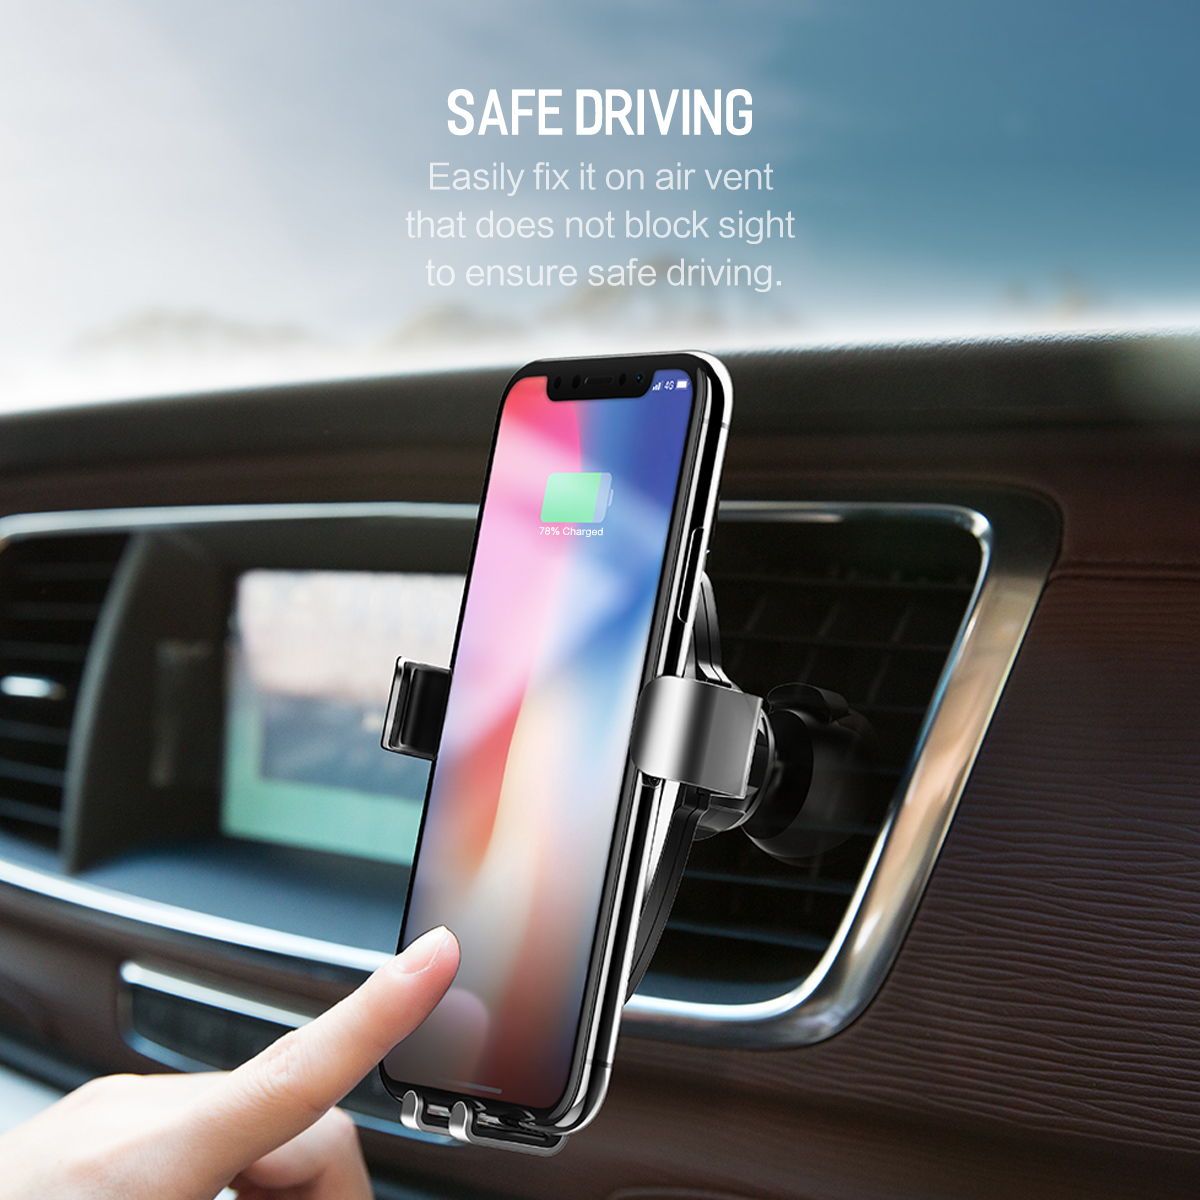 HTB1q77NB2uSBuNkHFqDq6xfhVXaB - 10W QI Wireless Car Charger Gravity Holder , ROCK for iPhone X 8 Plus Samsung Galaxy S8 S7 Note 8 Quick Charge Charging Stand